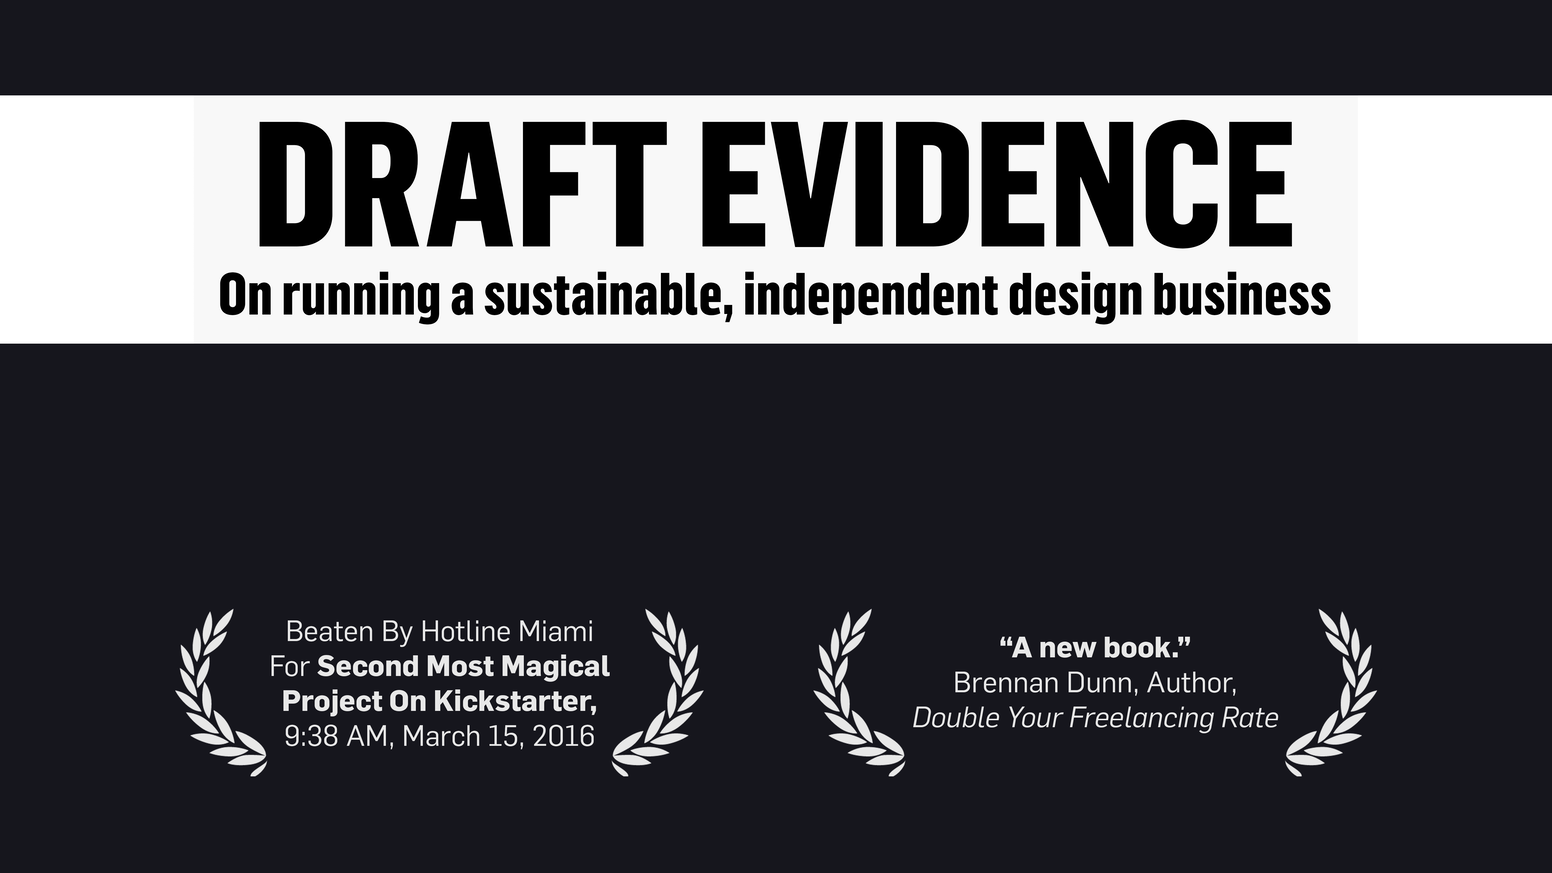 draft evidence essays about design  independent business by nick   essays about design  independent business im making a book that  provides clear steps on how to create a durable